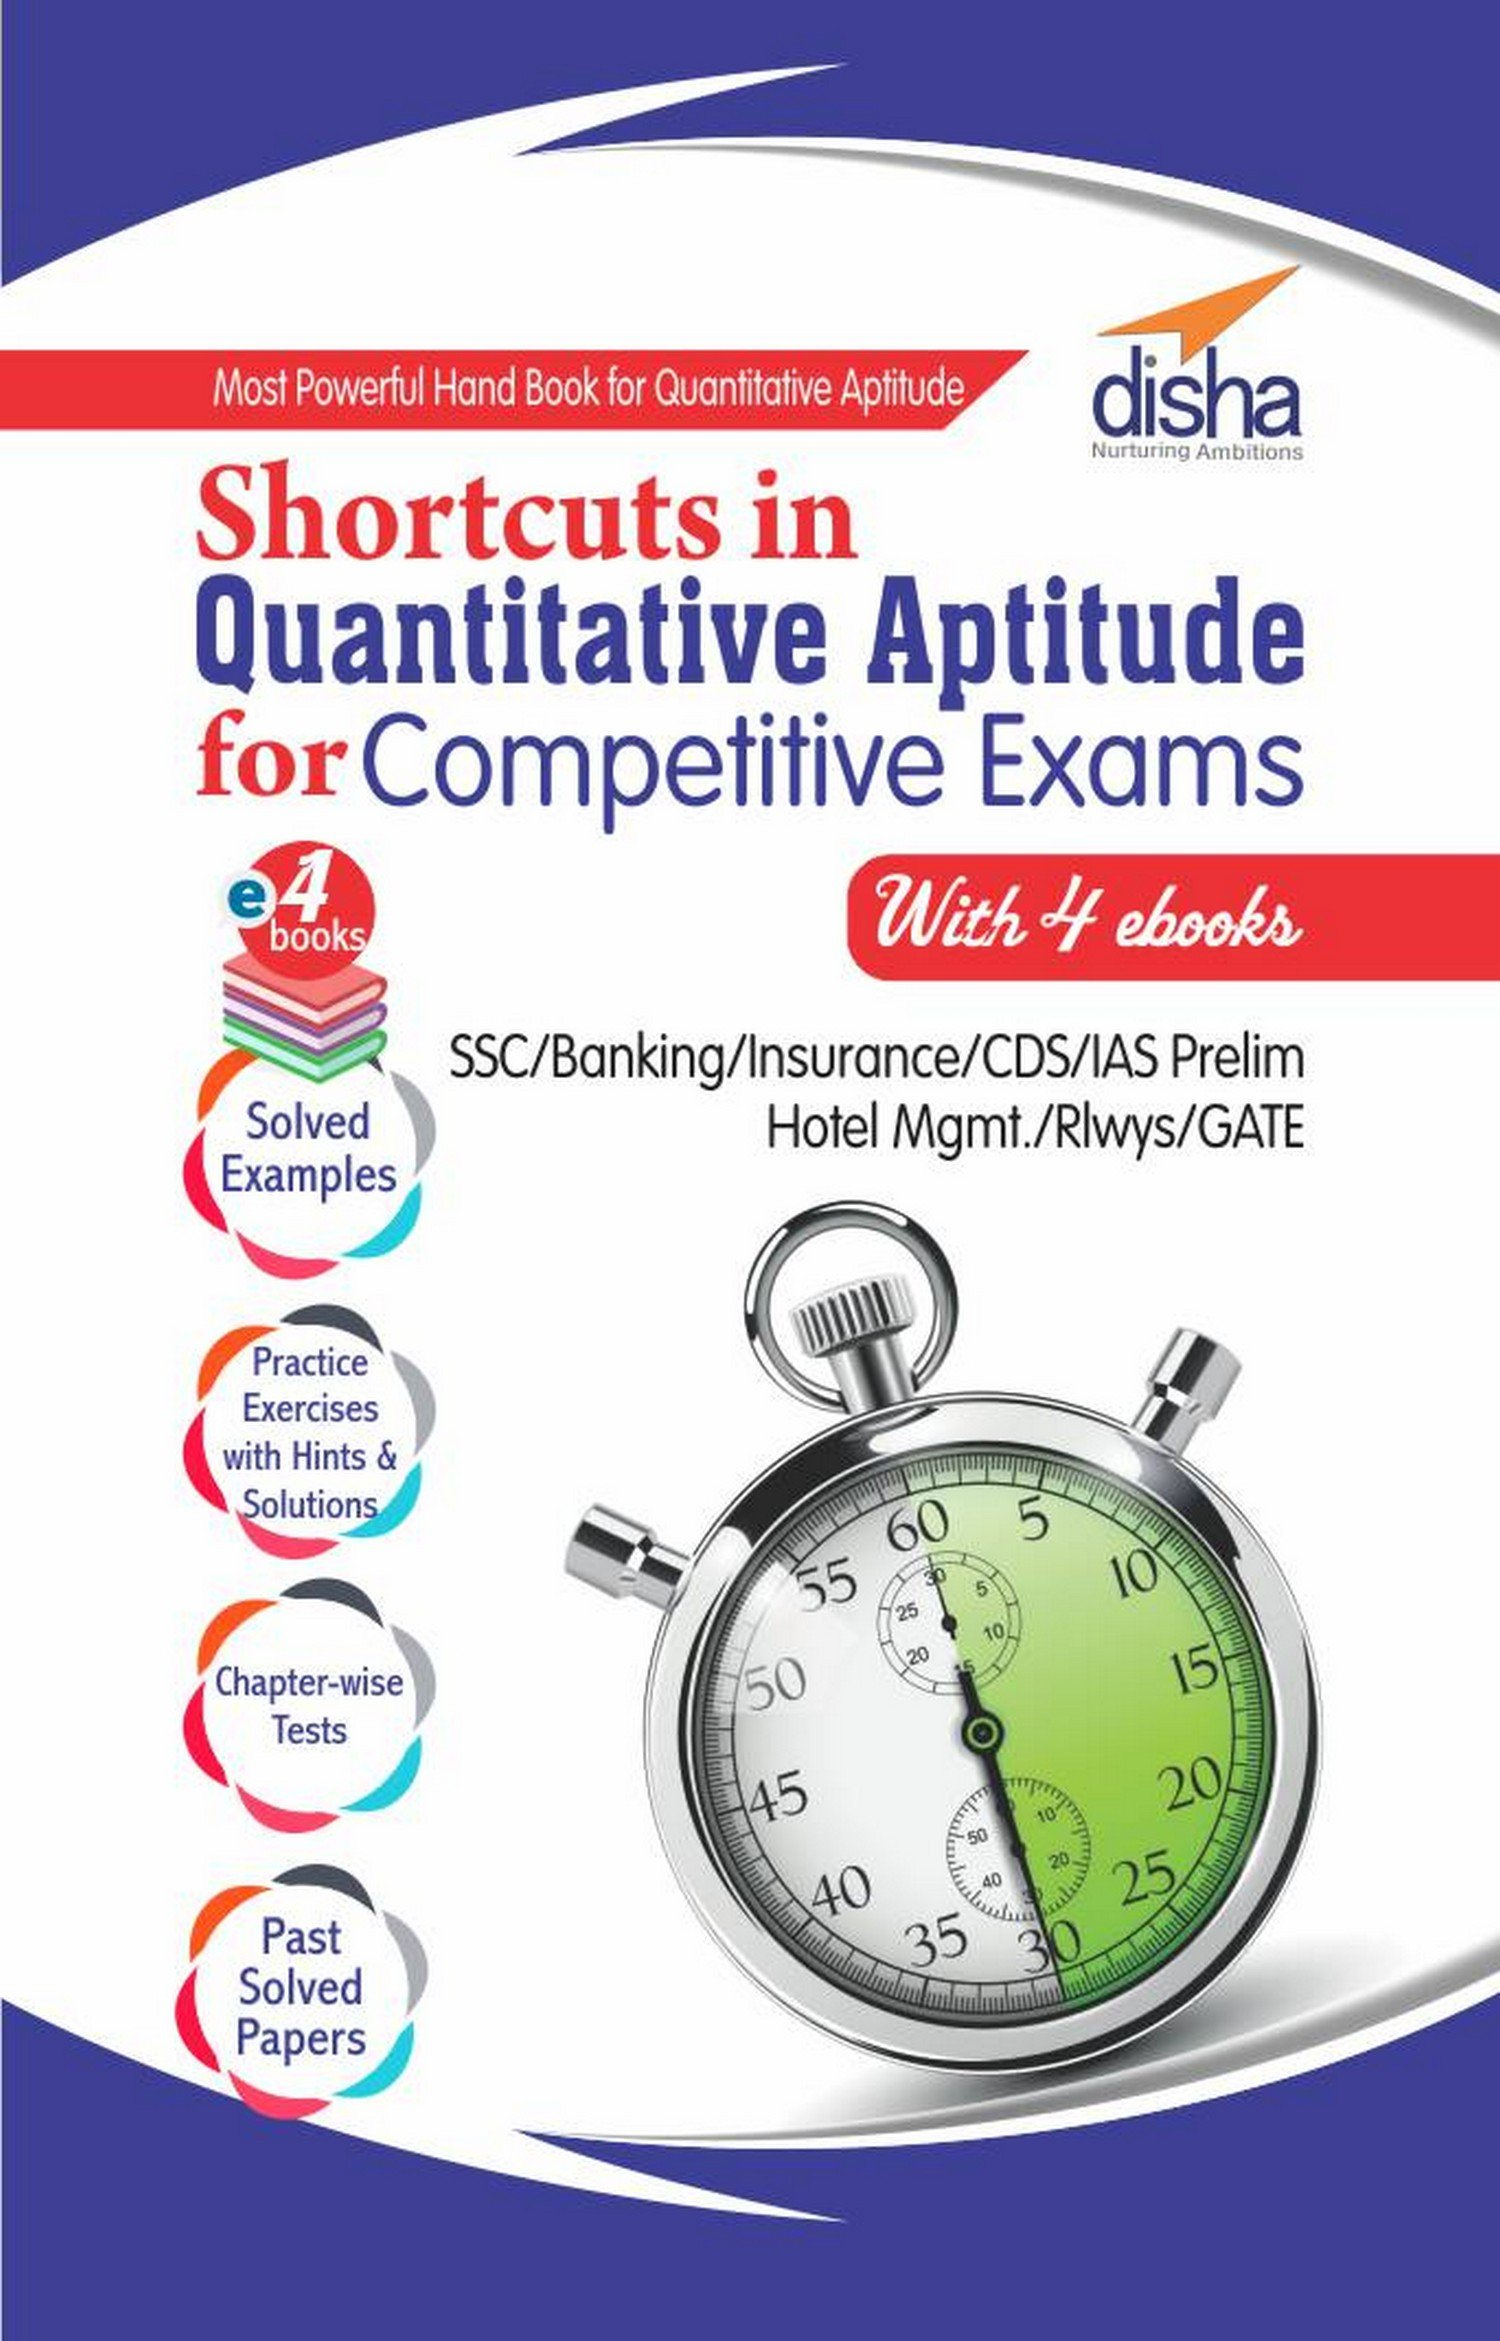 Shortcuts in quantitative aptitude with 4 ebooks for competitive shortcuts in quantitative aptitude with 4 ebooks for competitive exams fandeluxe Choice Image